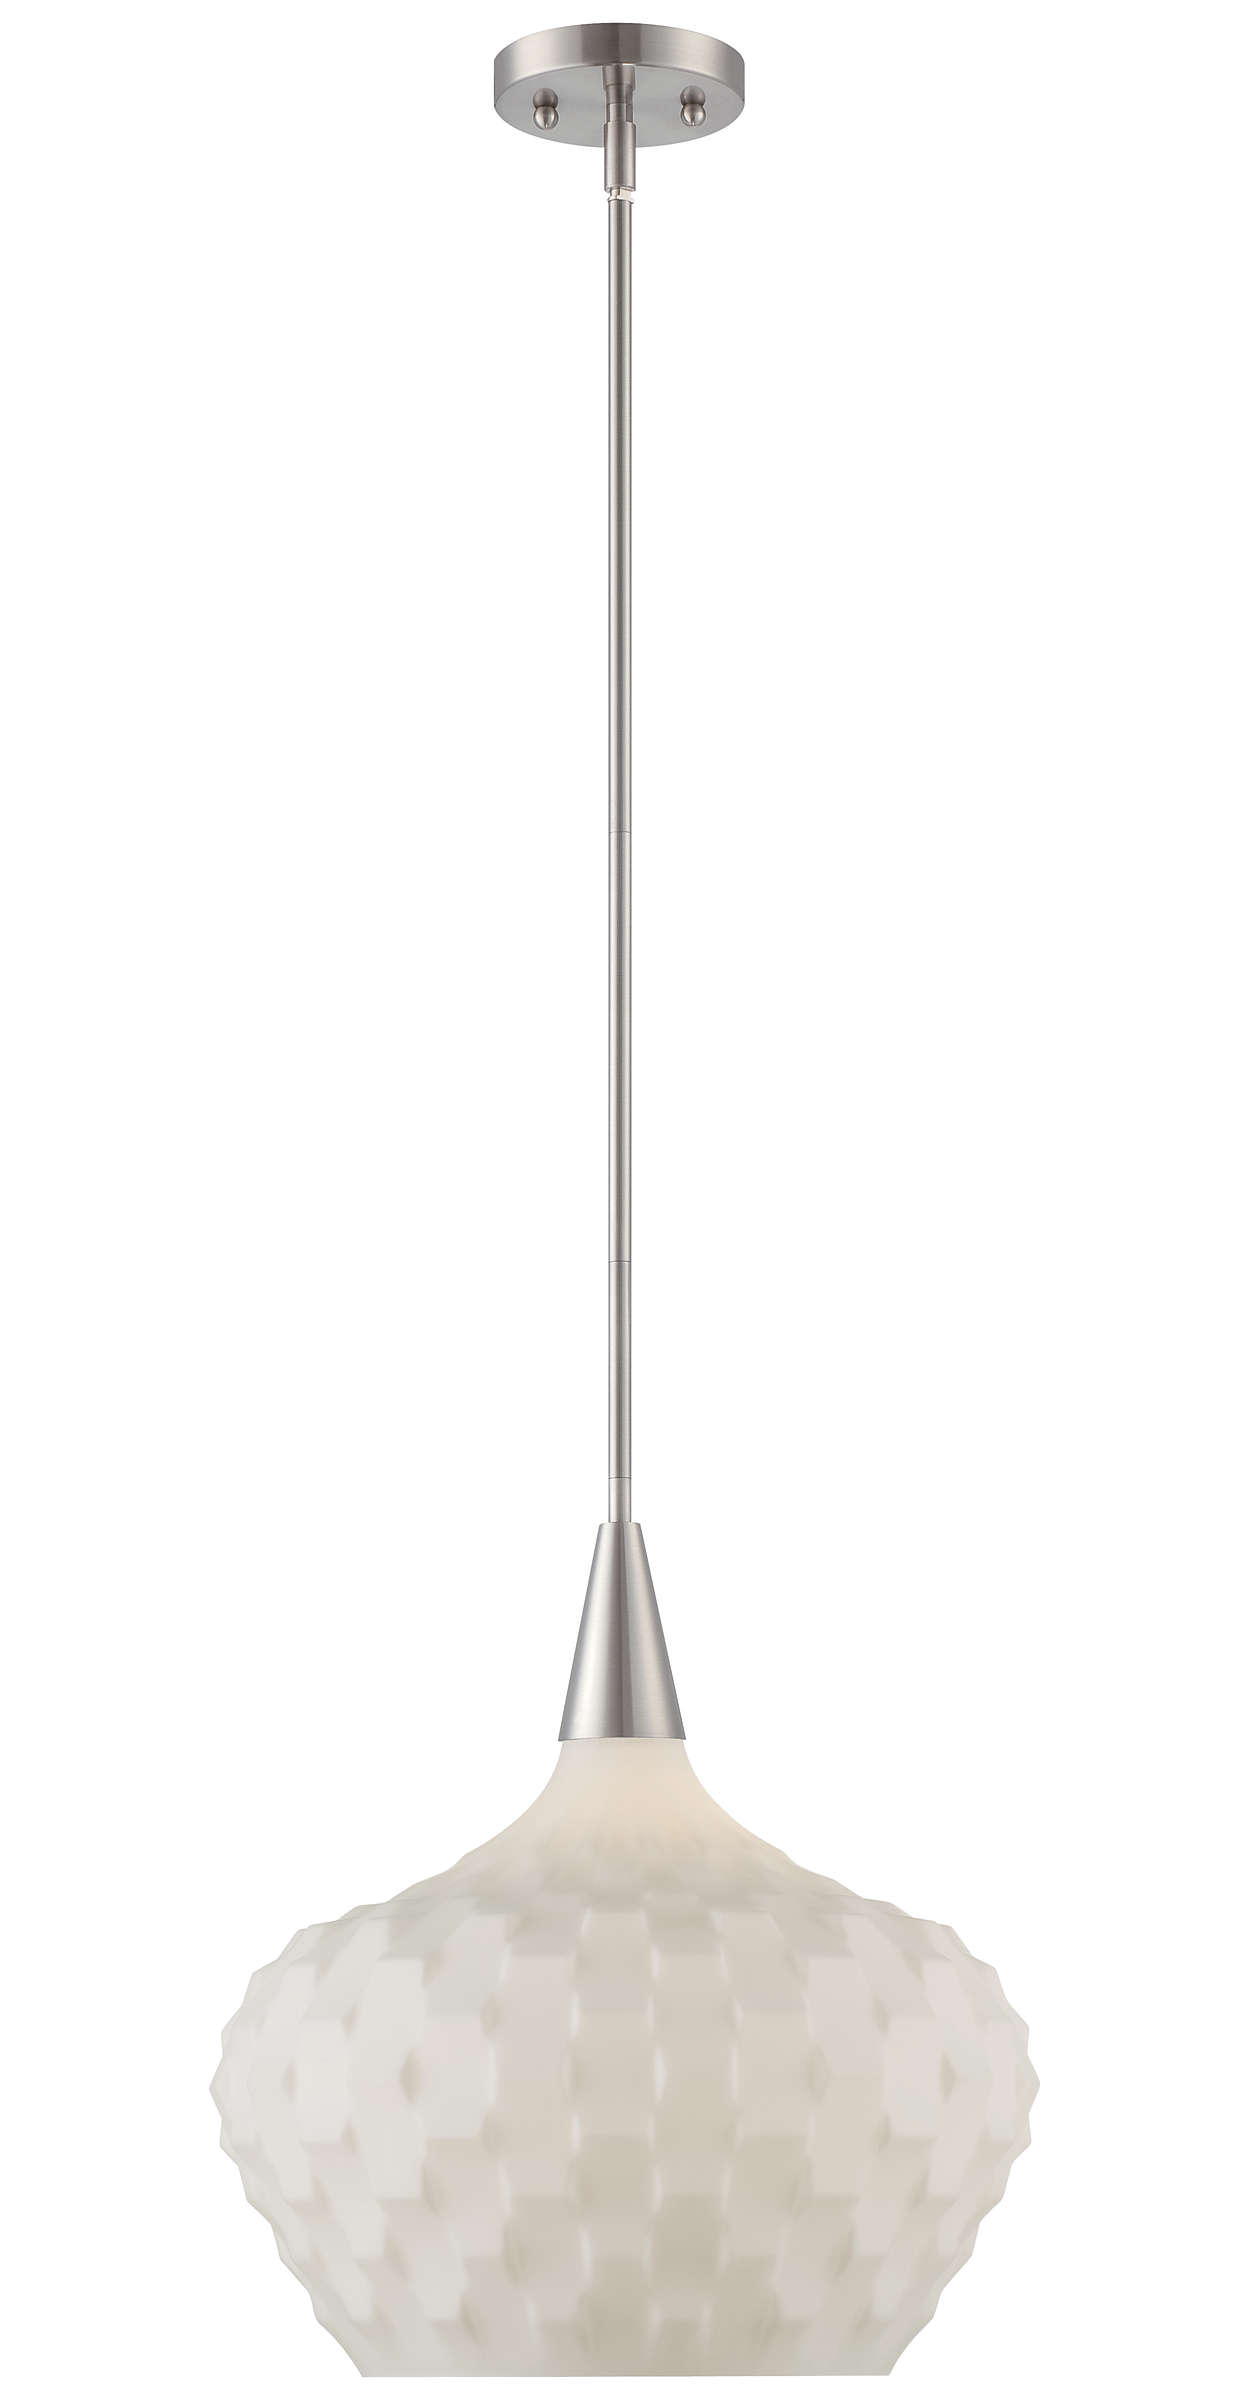 Ripple 1-light Pendant in Satin Nickel finish